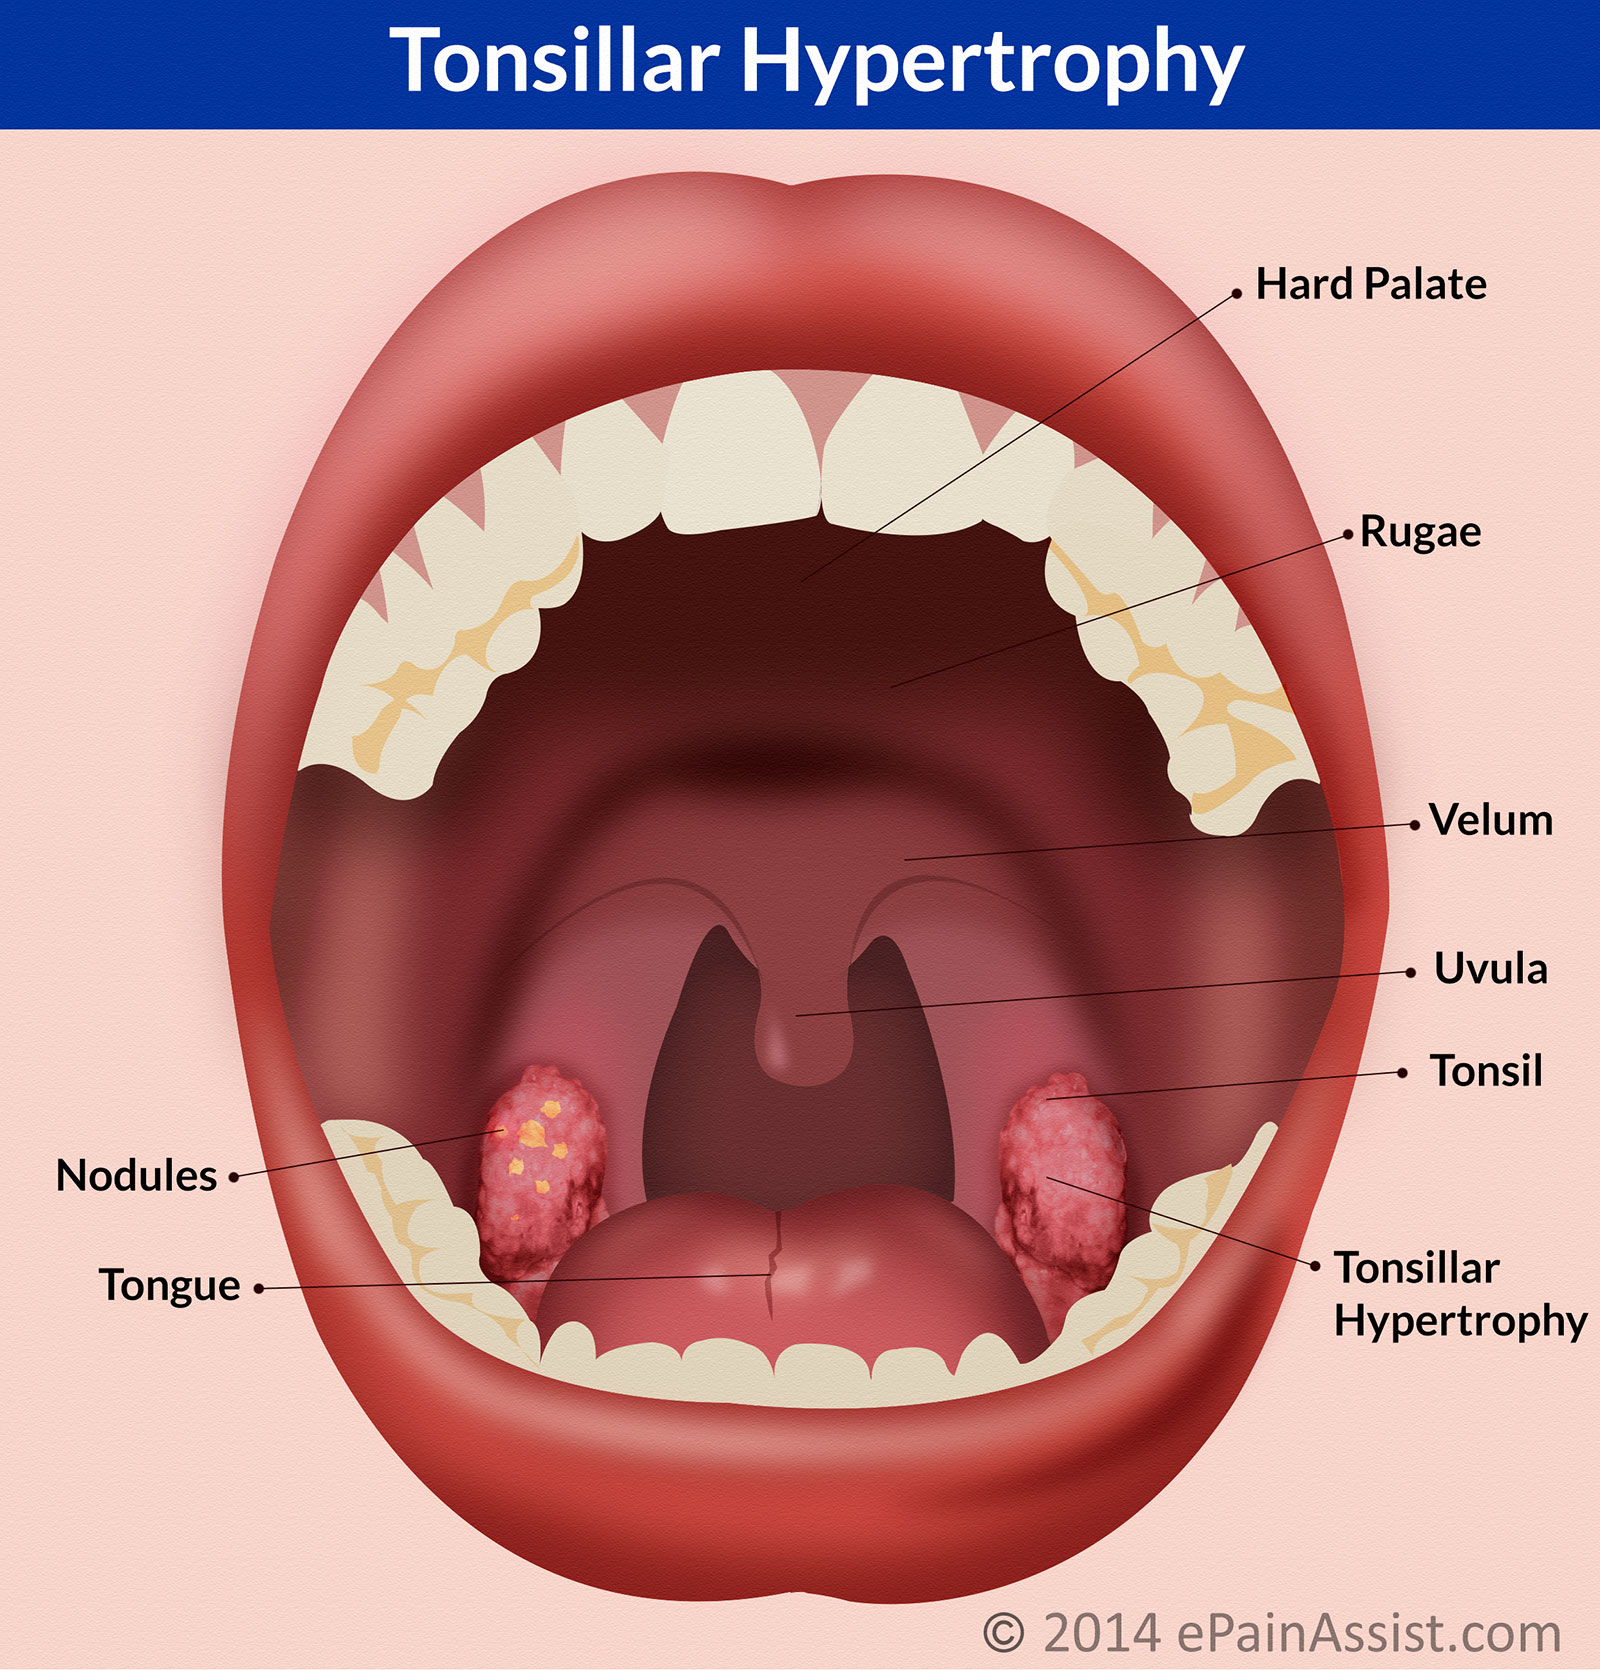 Pharyngeal tonsils - remove or treat